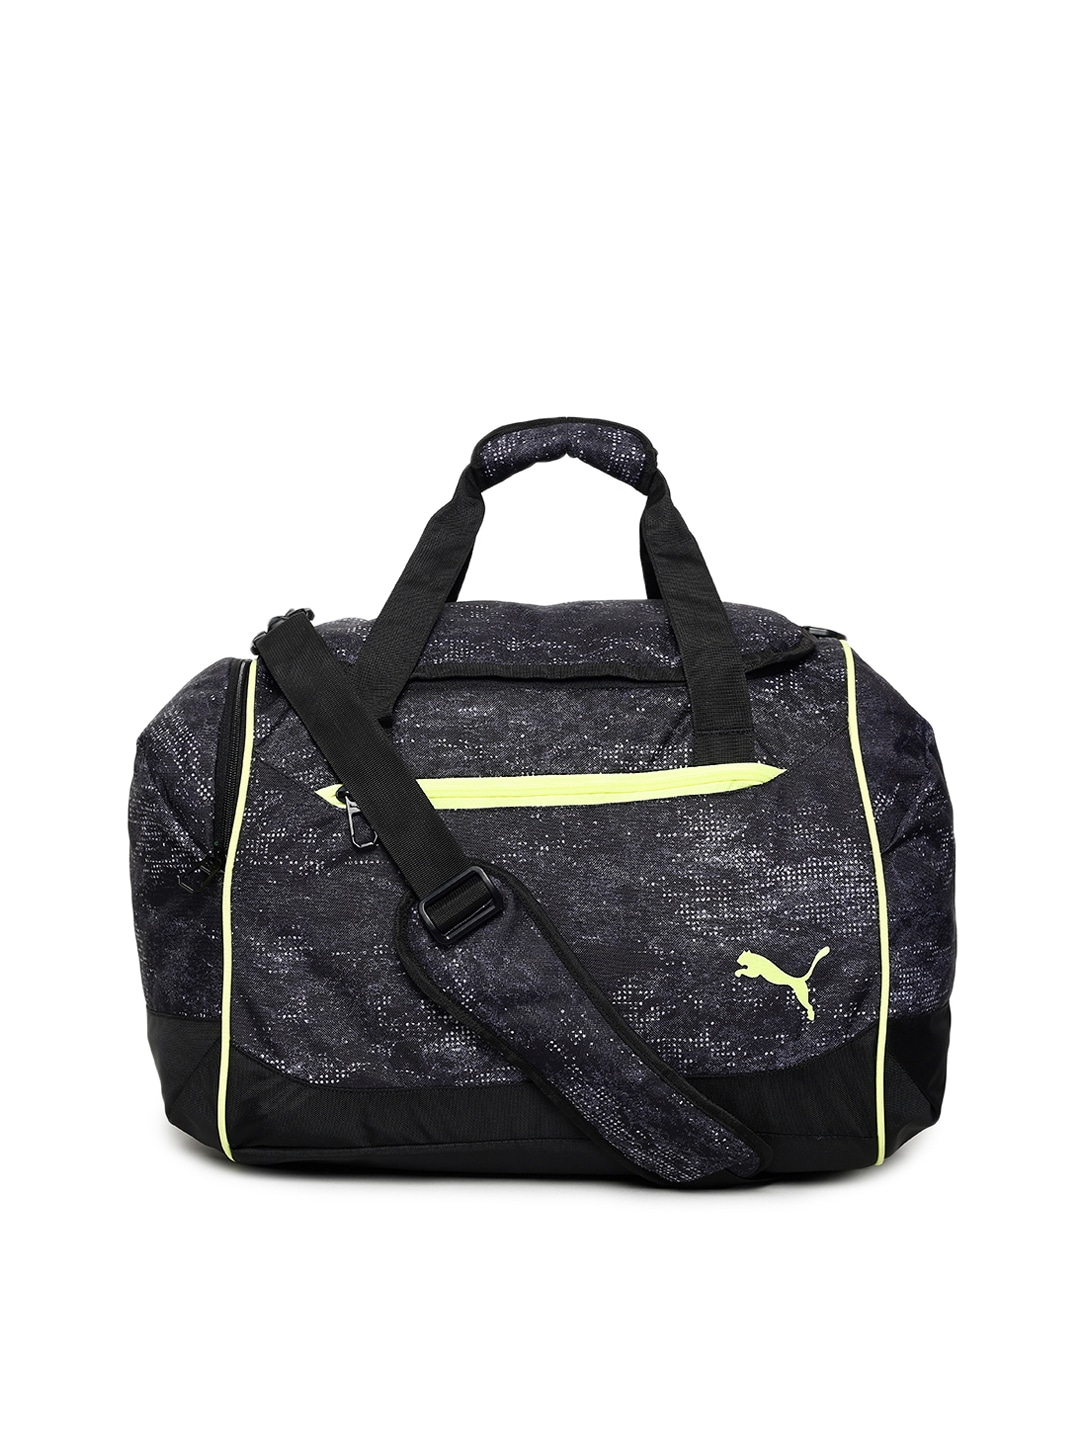 Puma Duffel Bag - Buy Puma Duffel Bag online in India 228e46c8dcc80